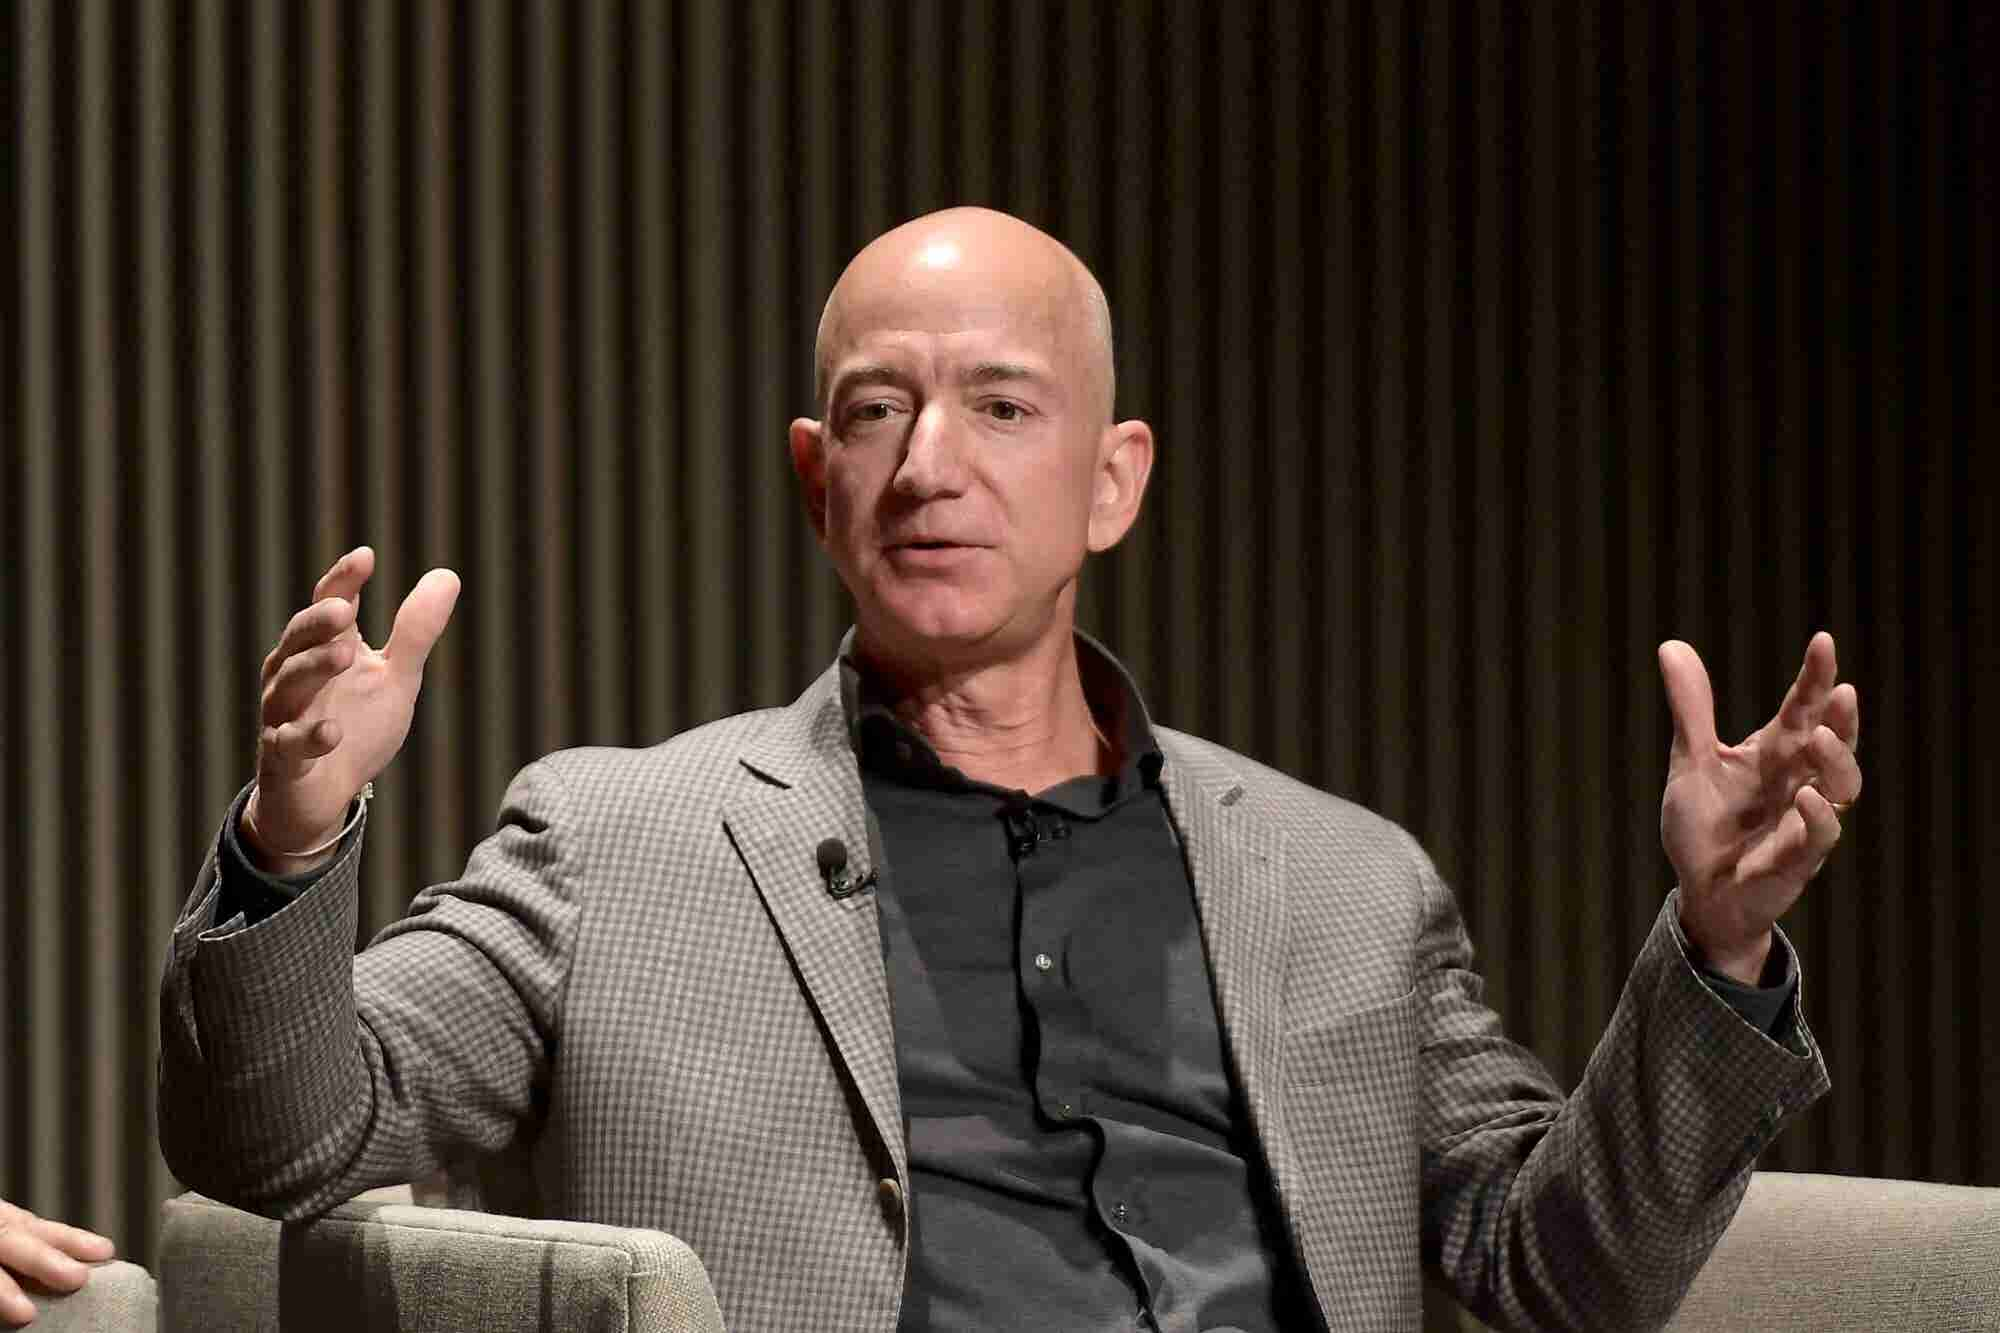 5 Lessons from Jeff Bezos's 21 Years of Shareholder Letters